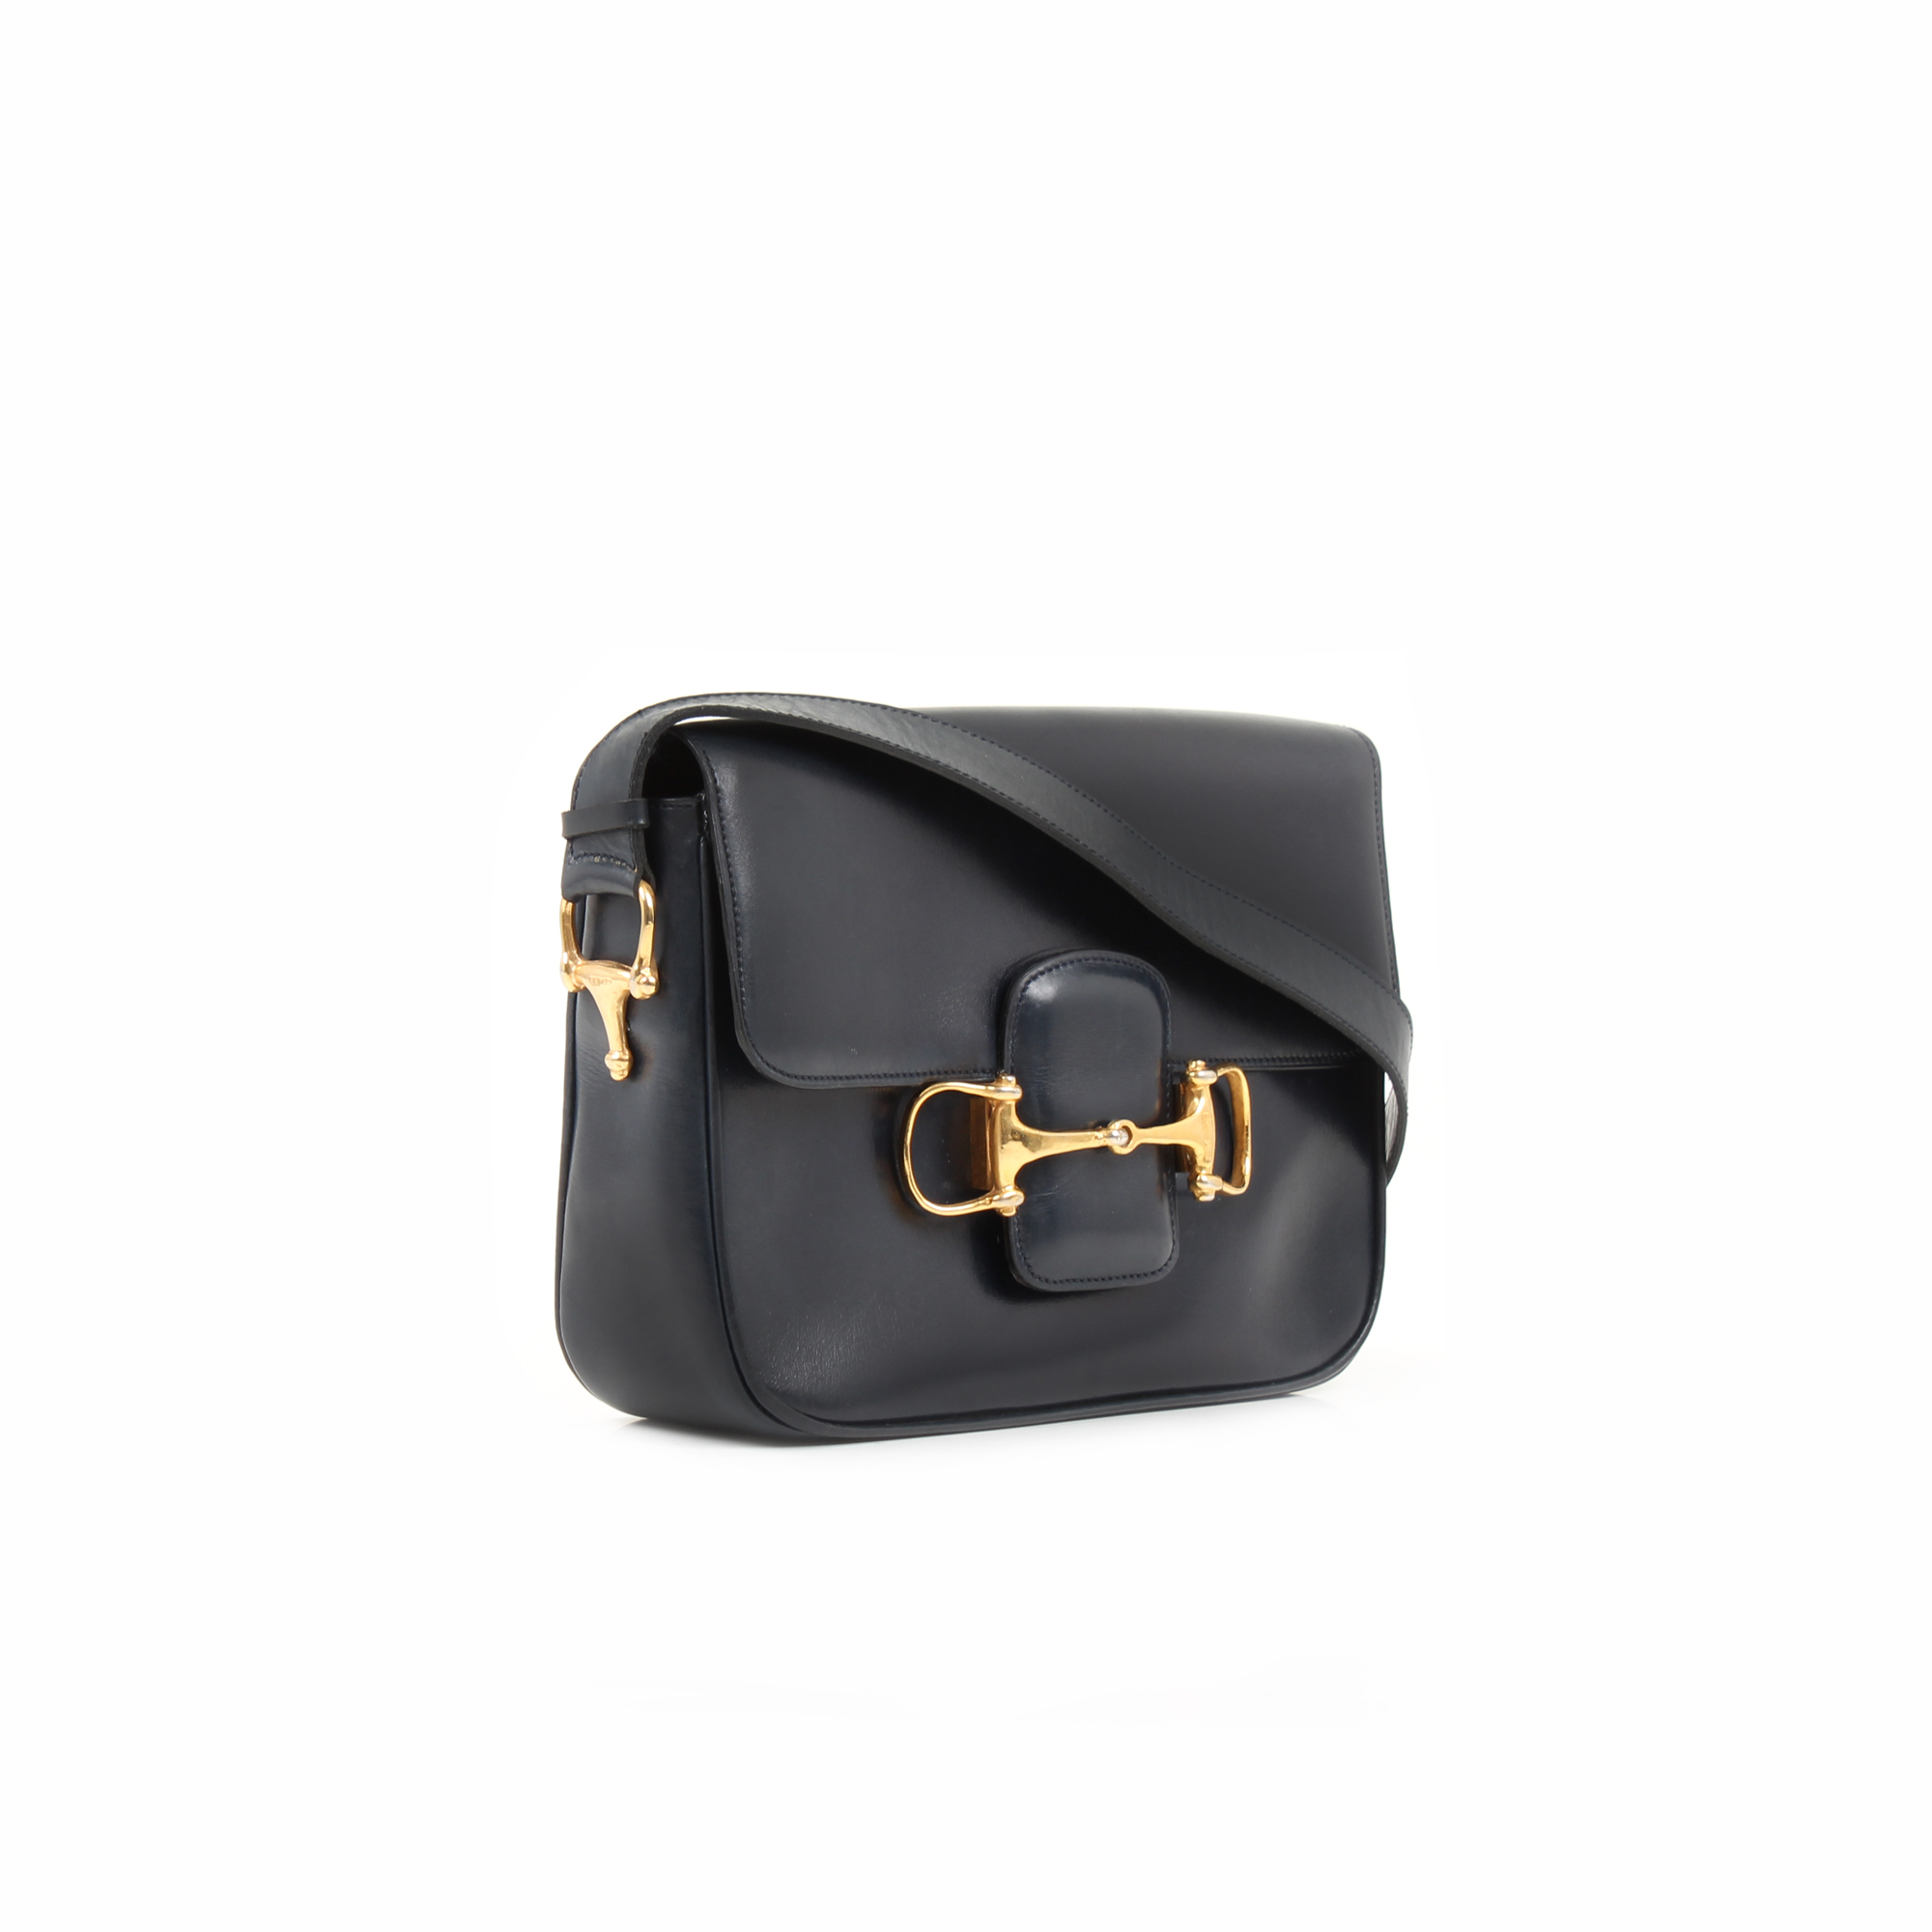 General image of celine box vintage shoulder bag